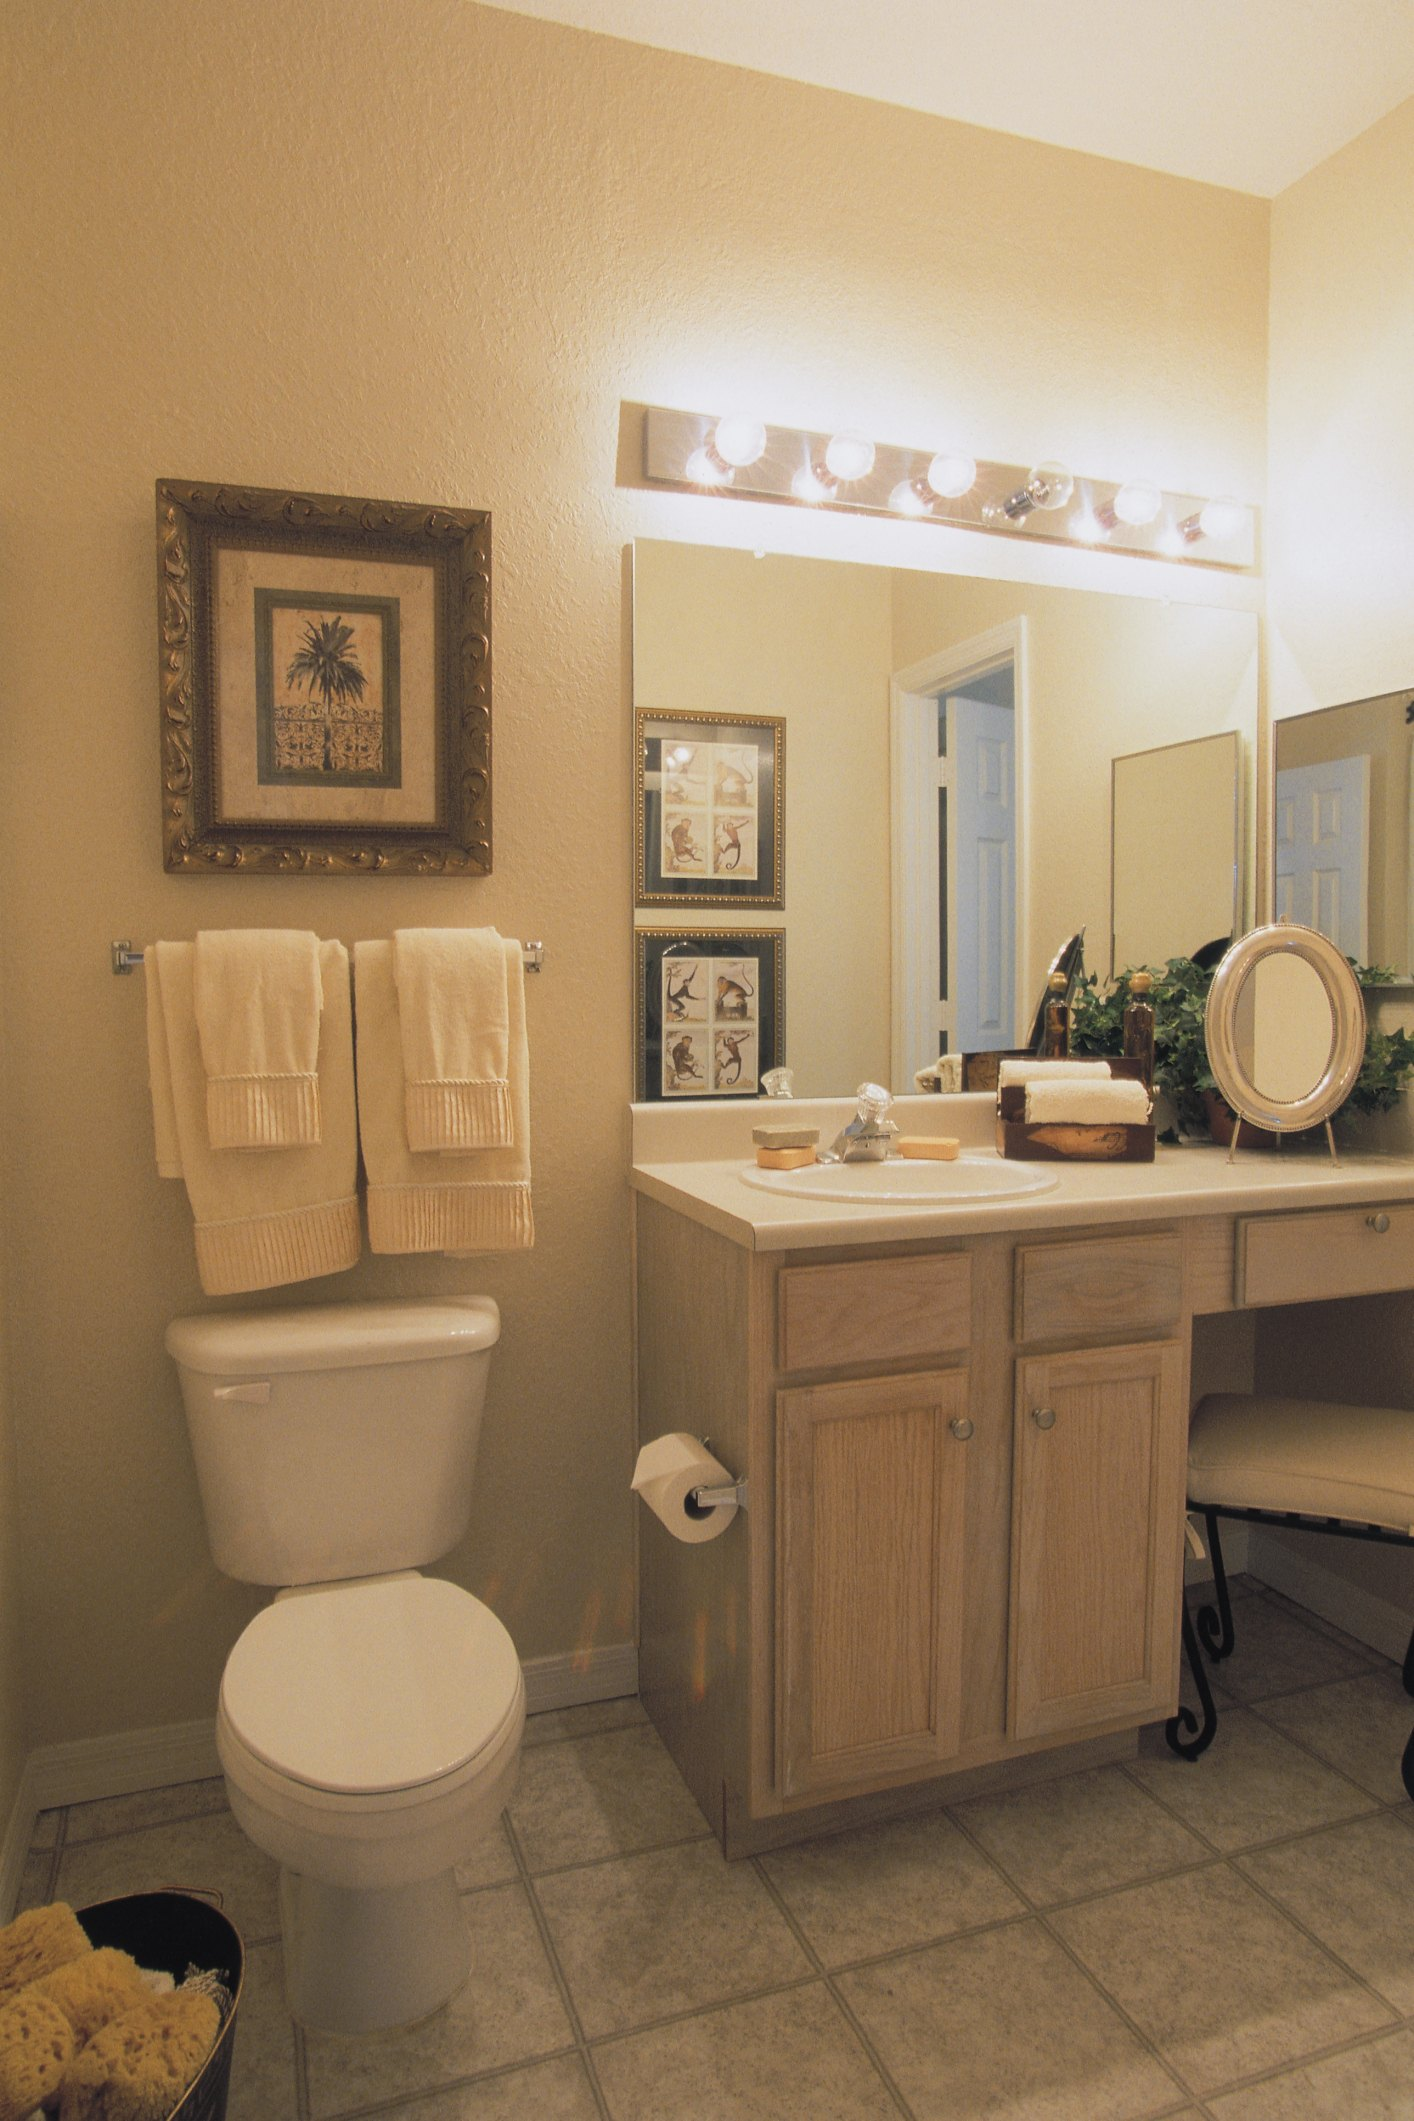 How To Size A Bathroom Vanity Bar Light Over A Mirror